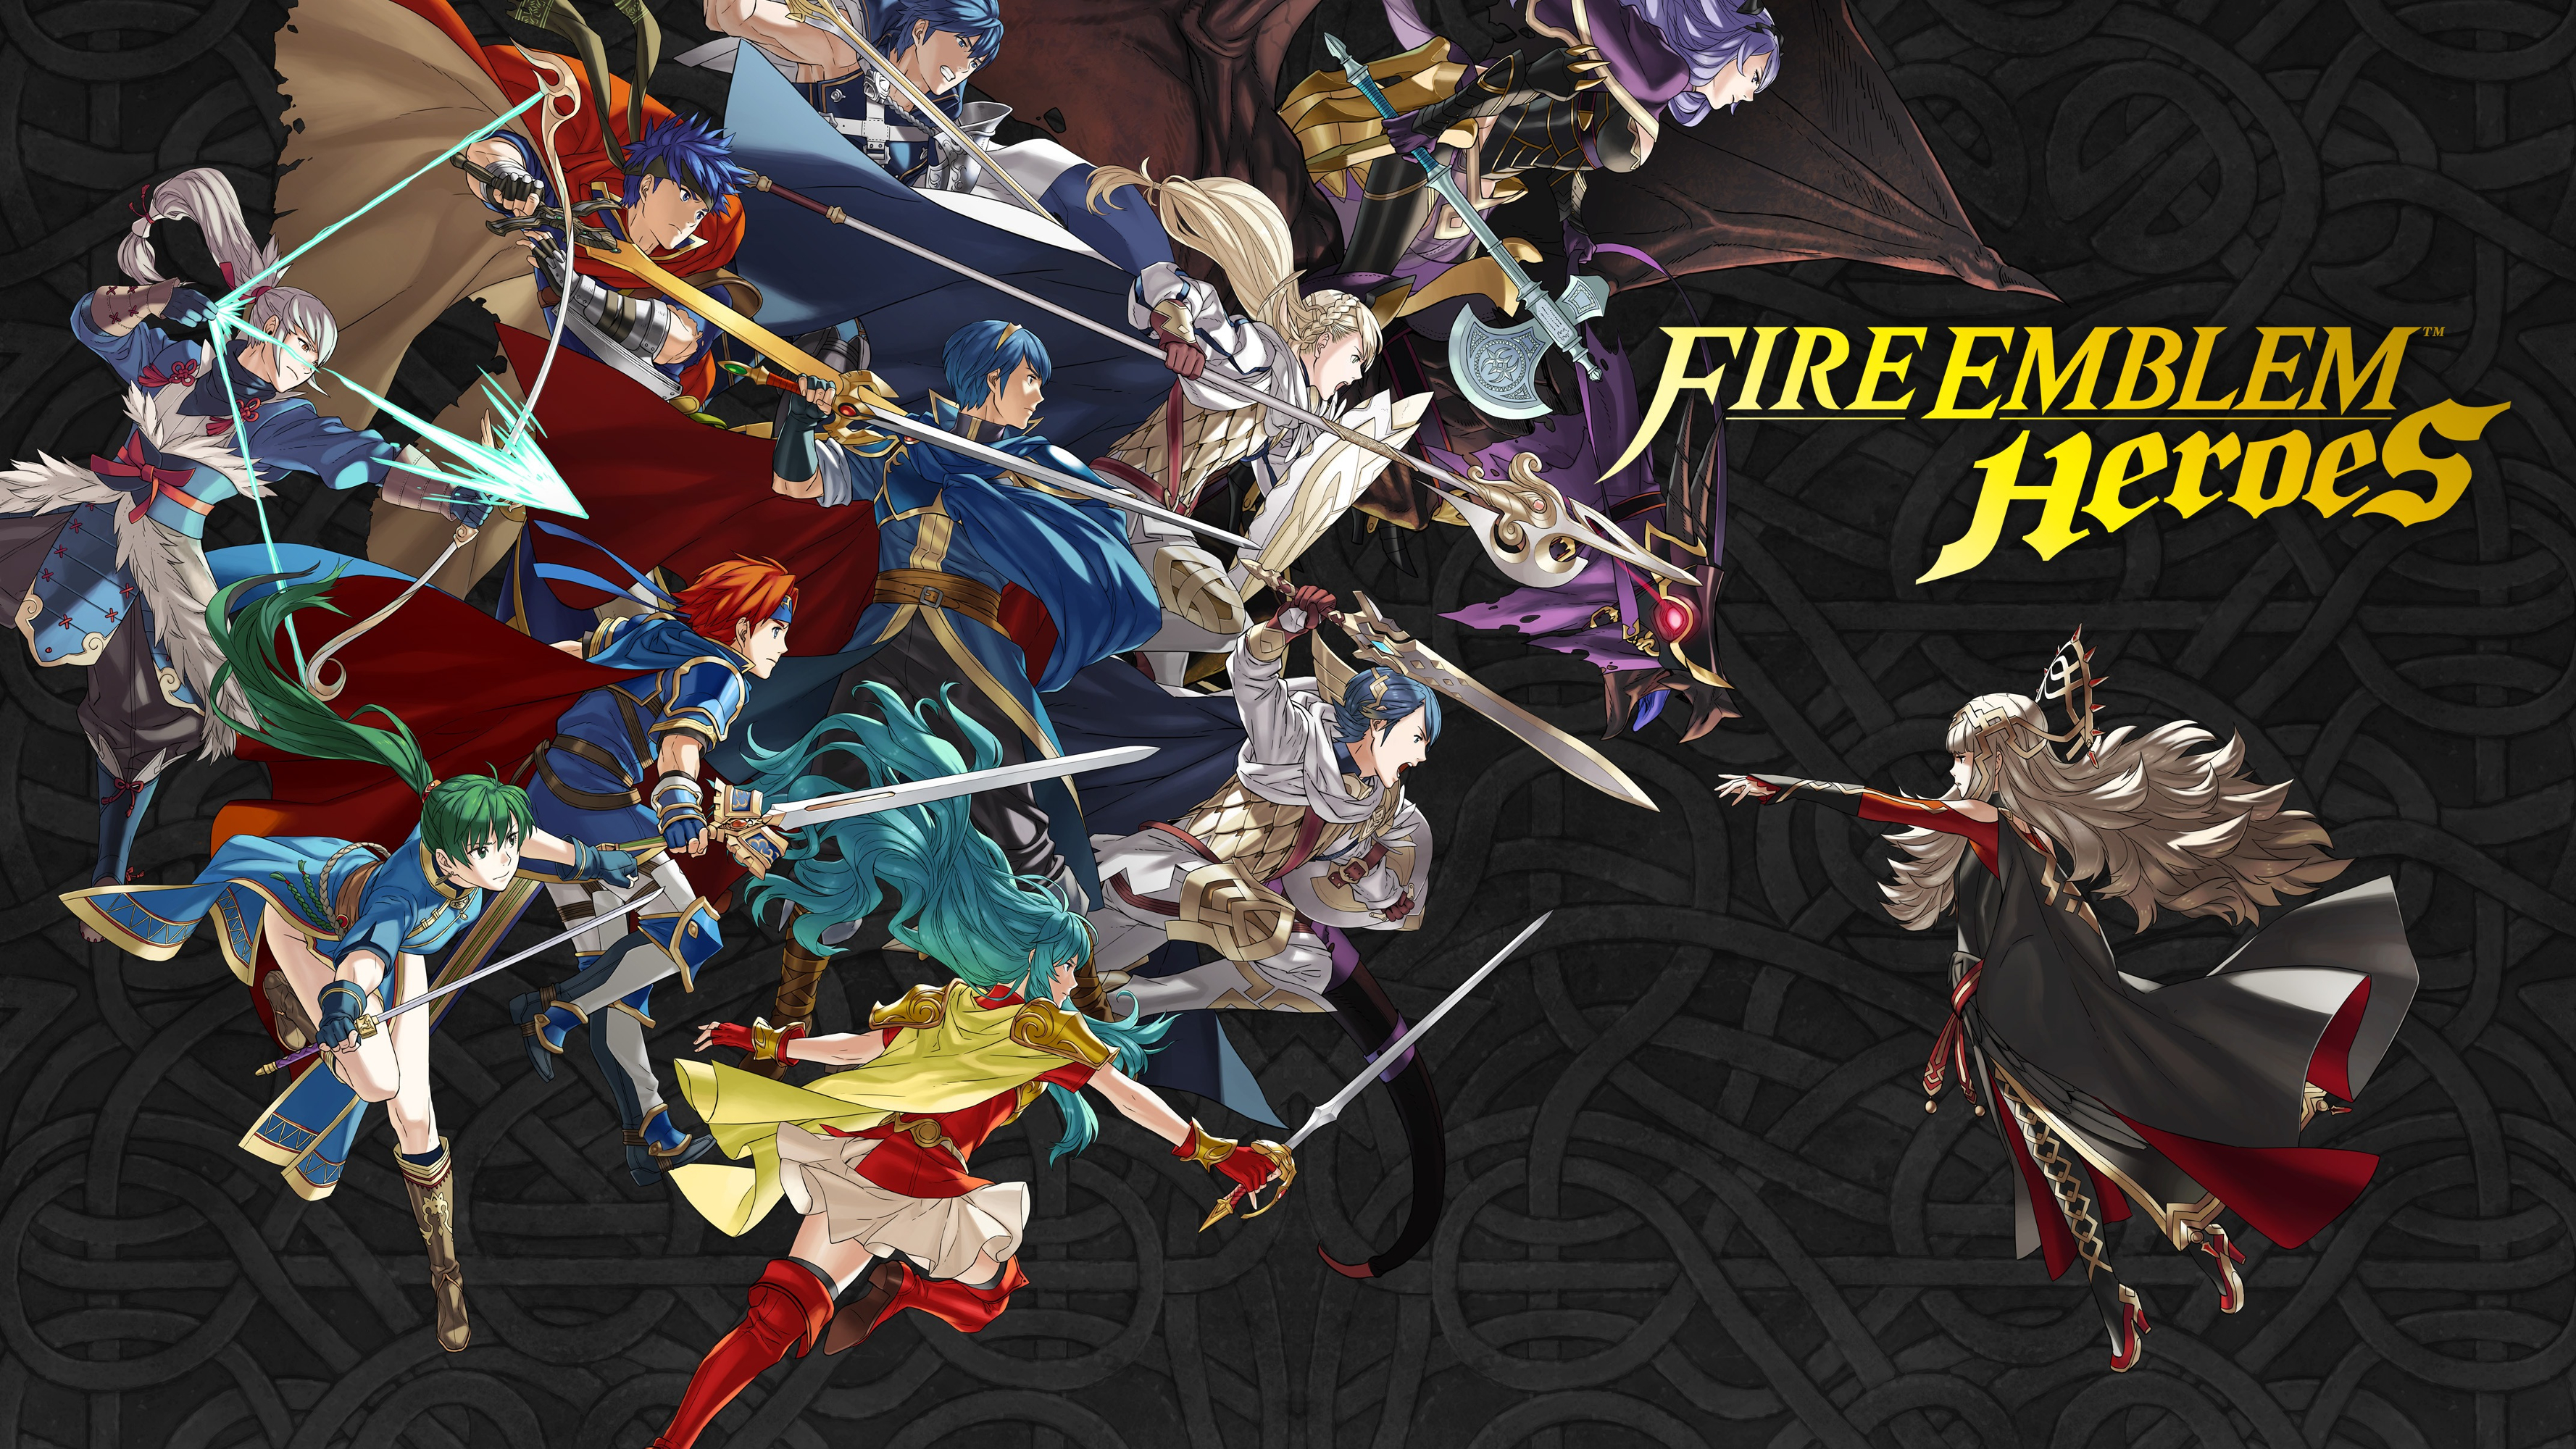 32 Fire Emblem Heroes Hd Wallpapers Background Images